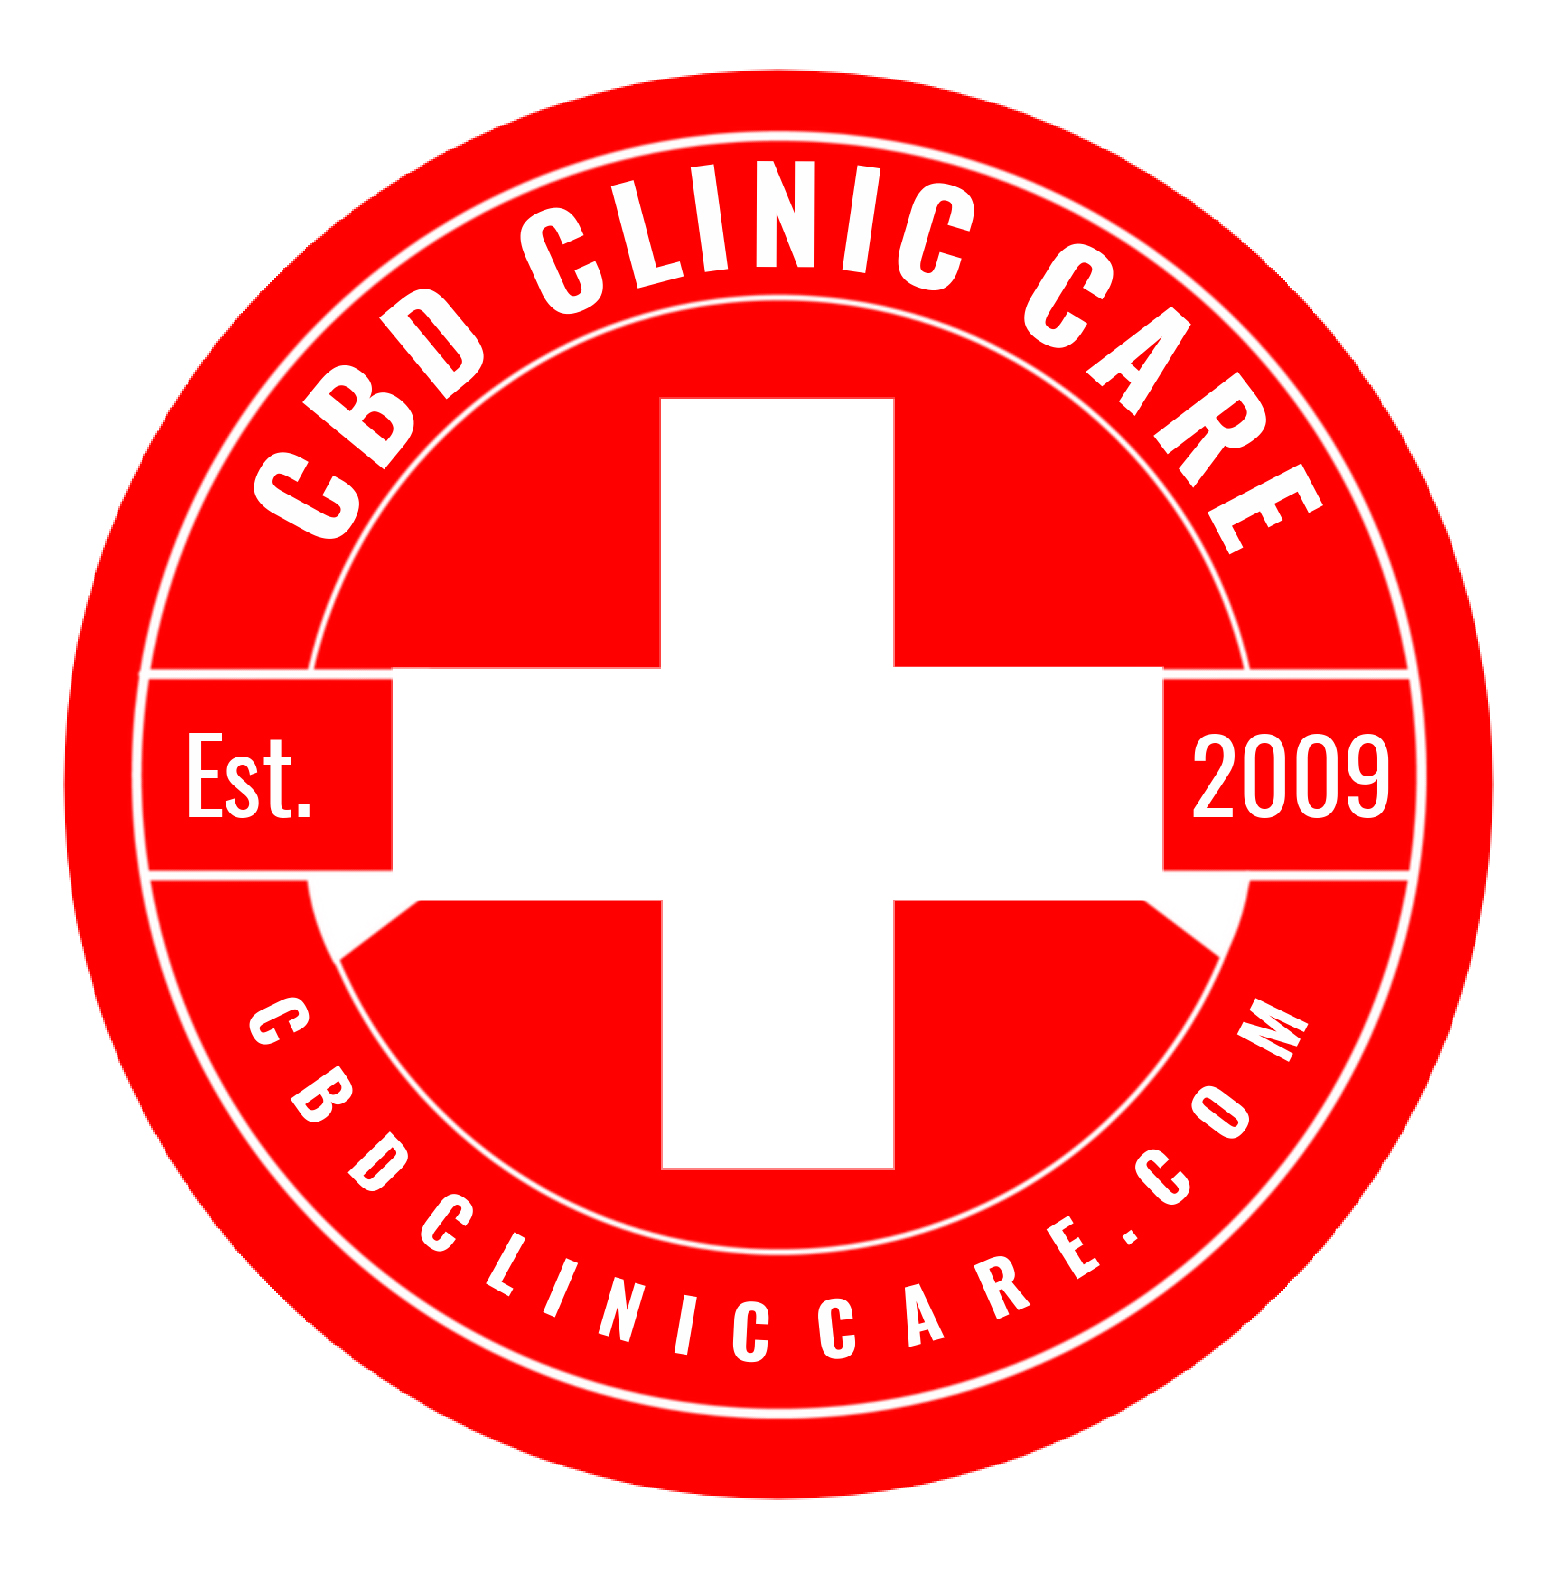 CBD Clinic Care